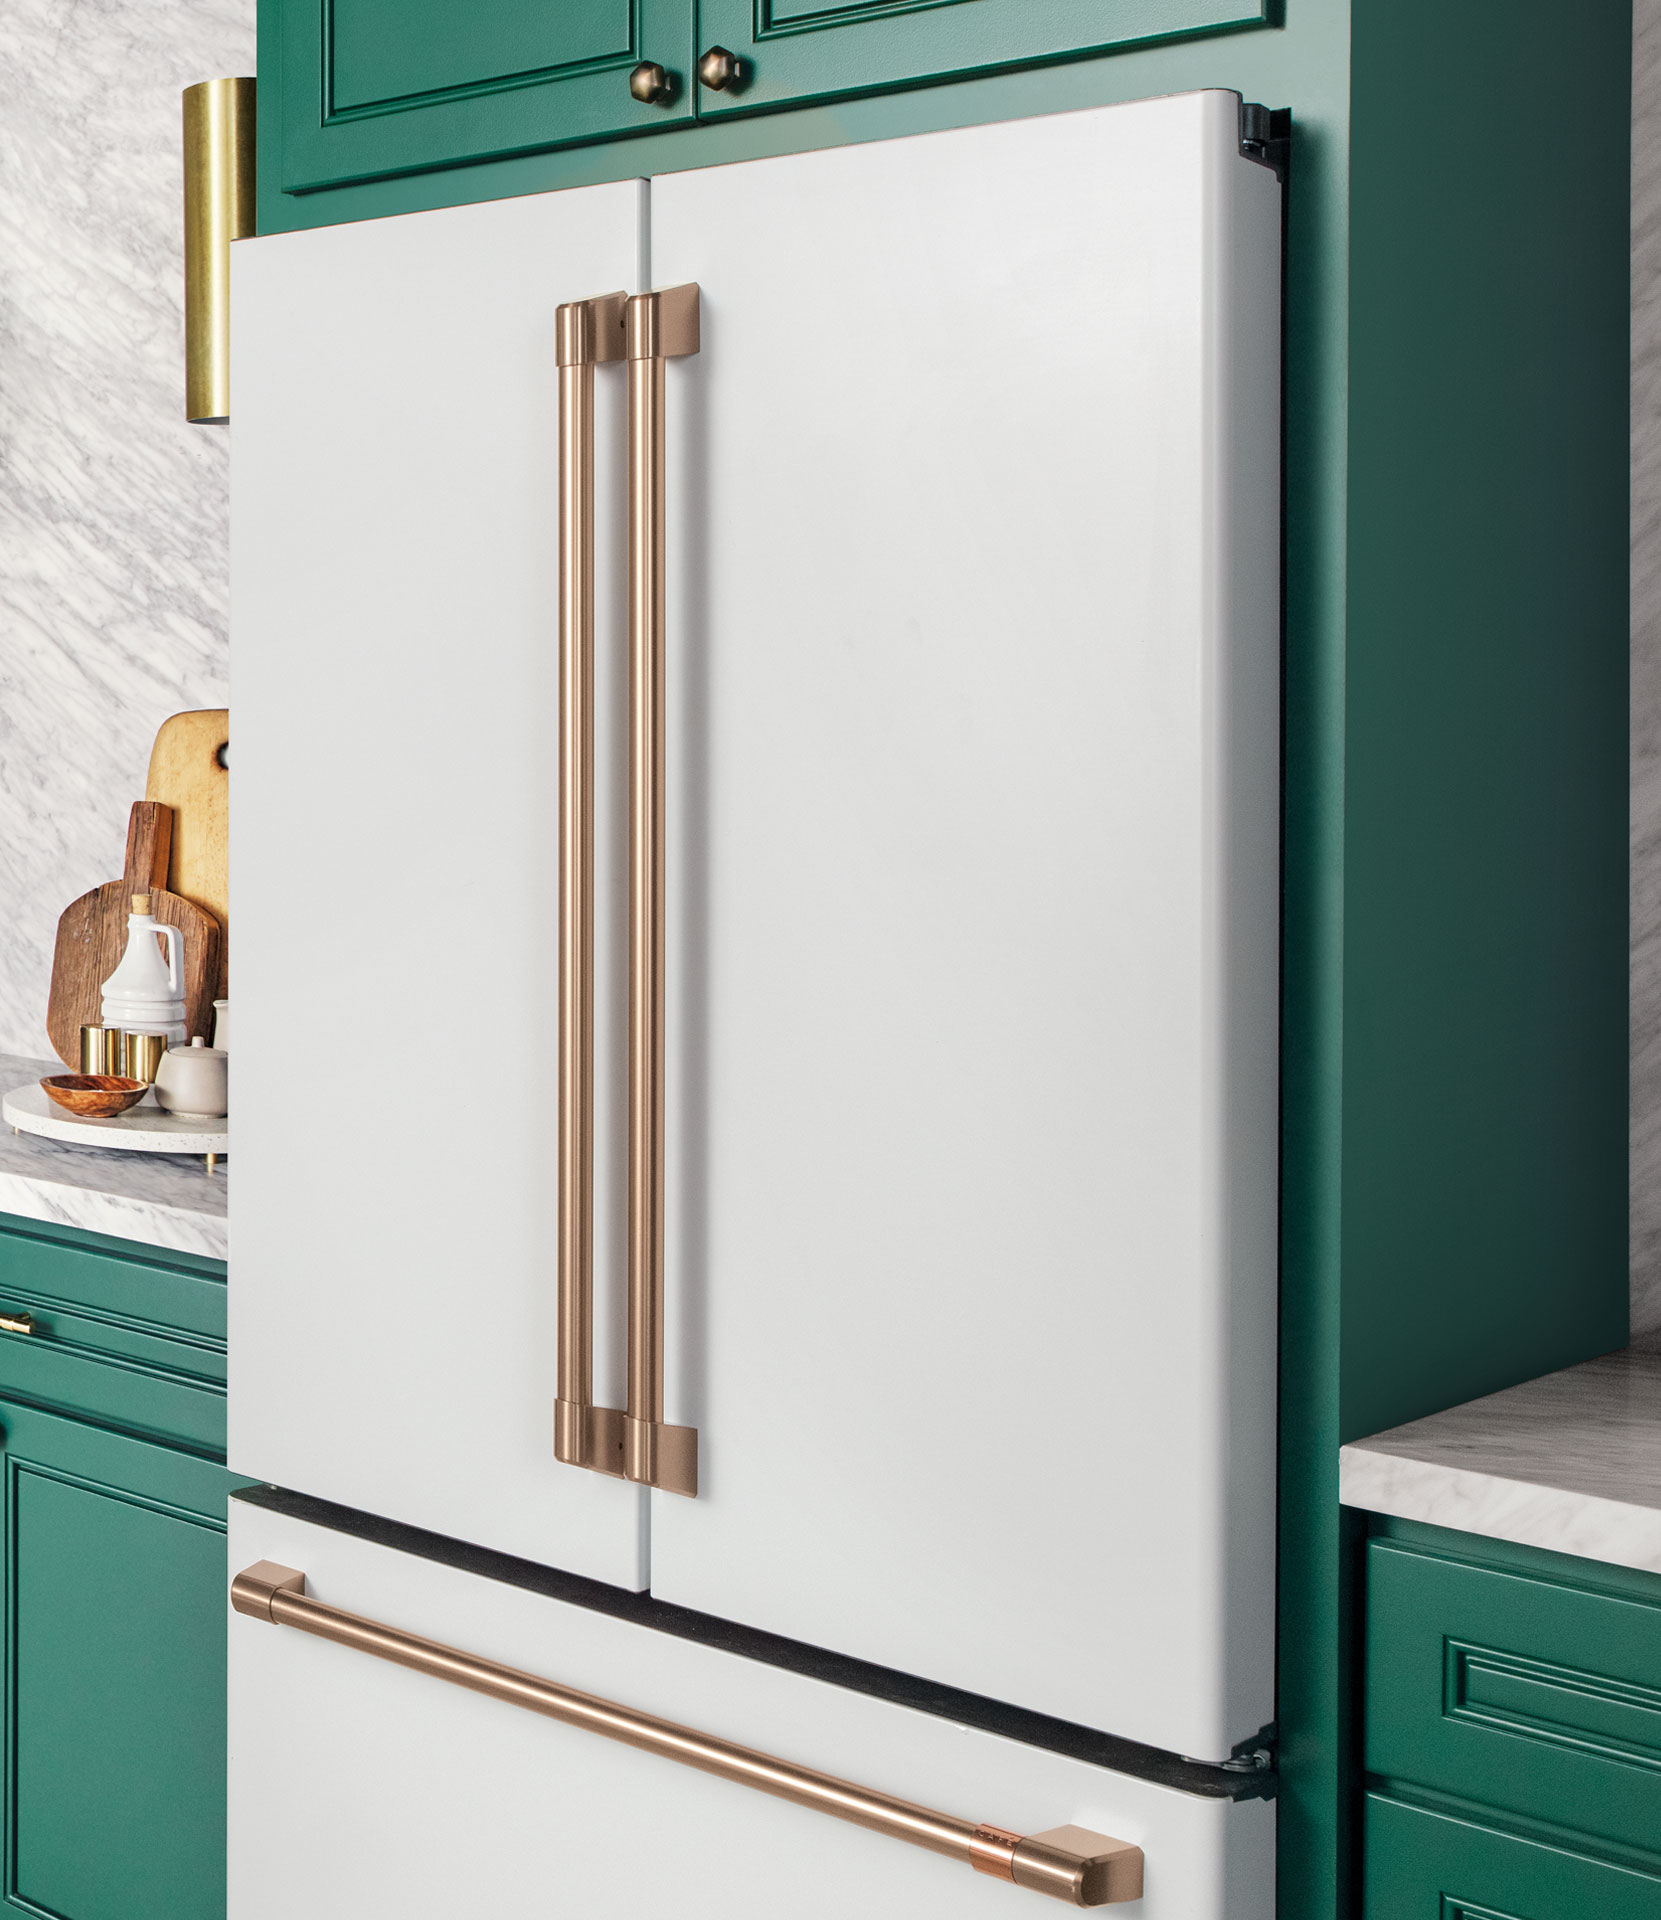 matte white french door refrigerator with green cabinets